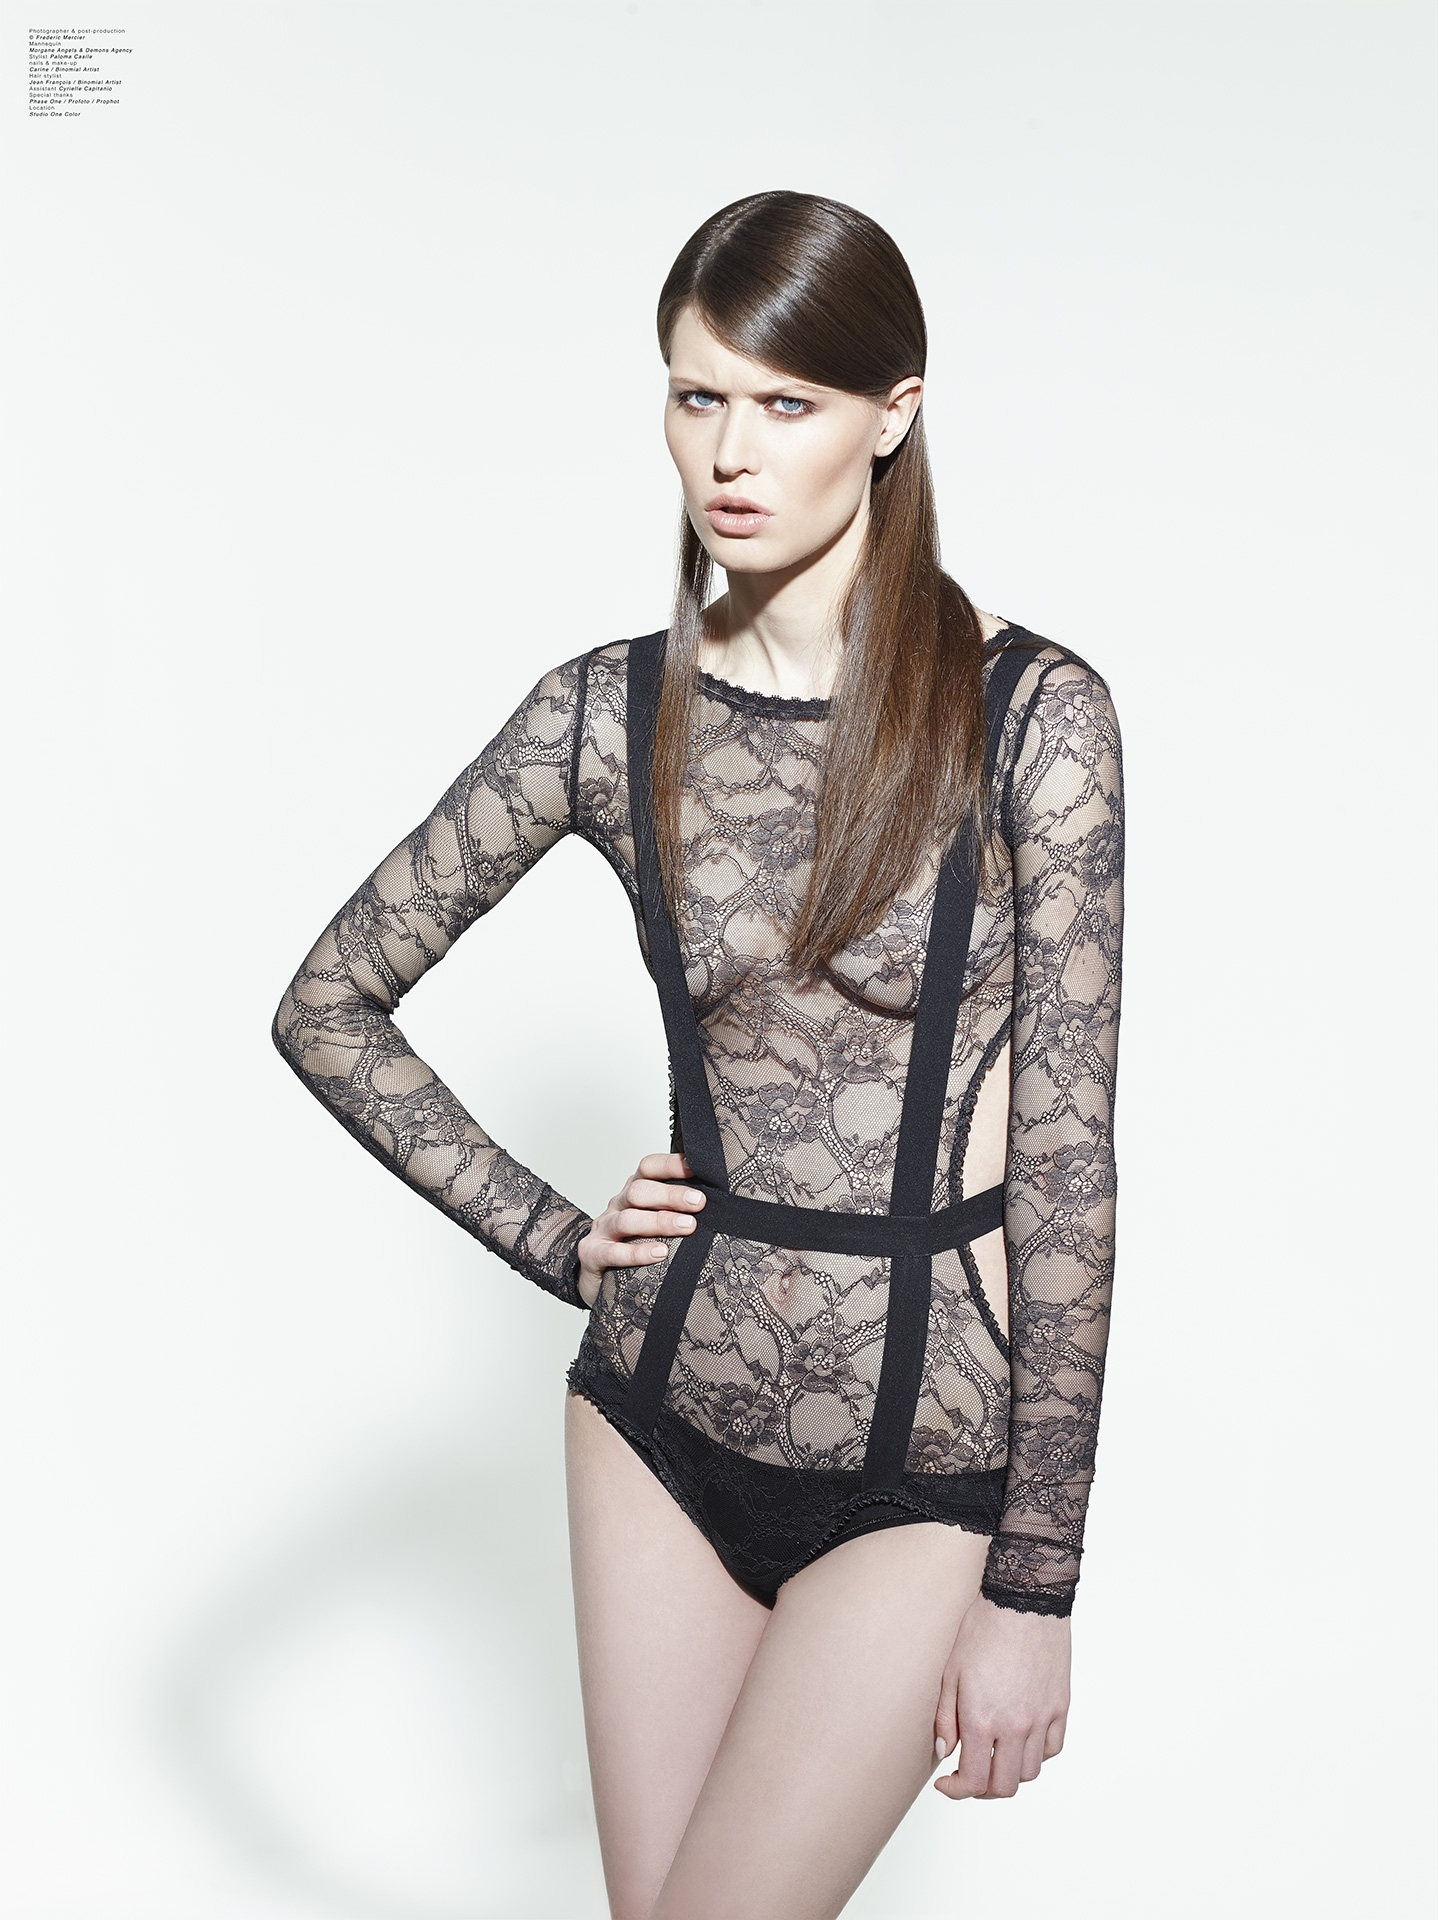 paloma casile aw 2013 campaign lingerie underwear frederic mercier fashion photographer one color